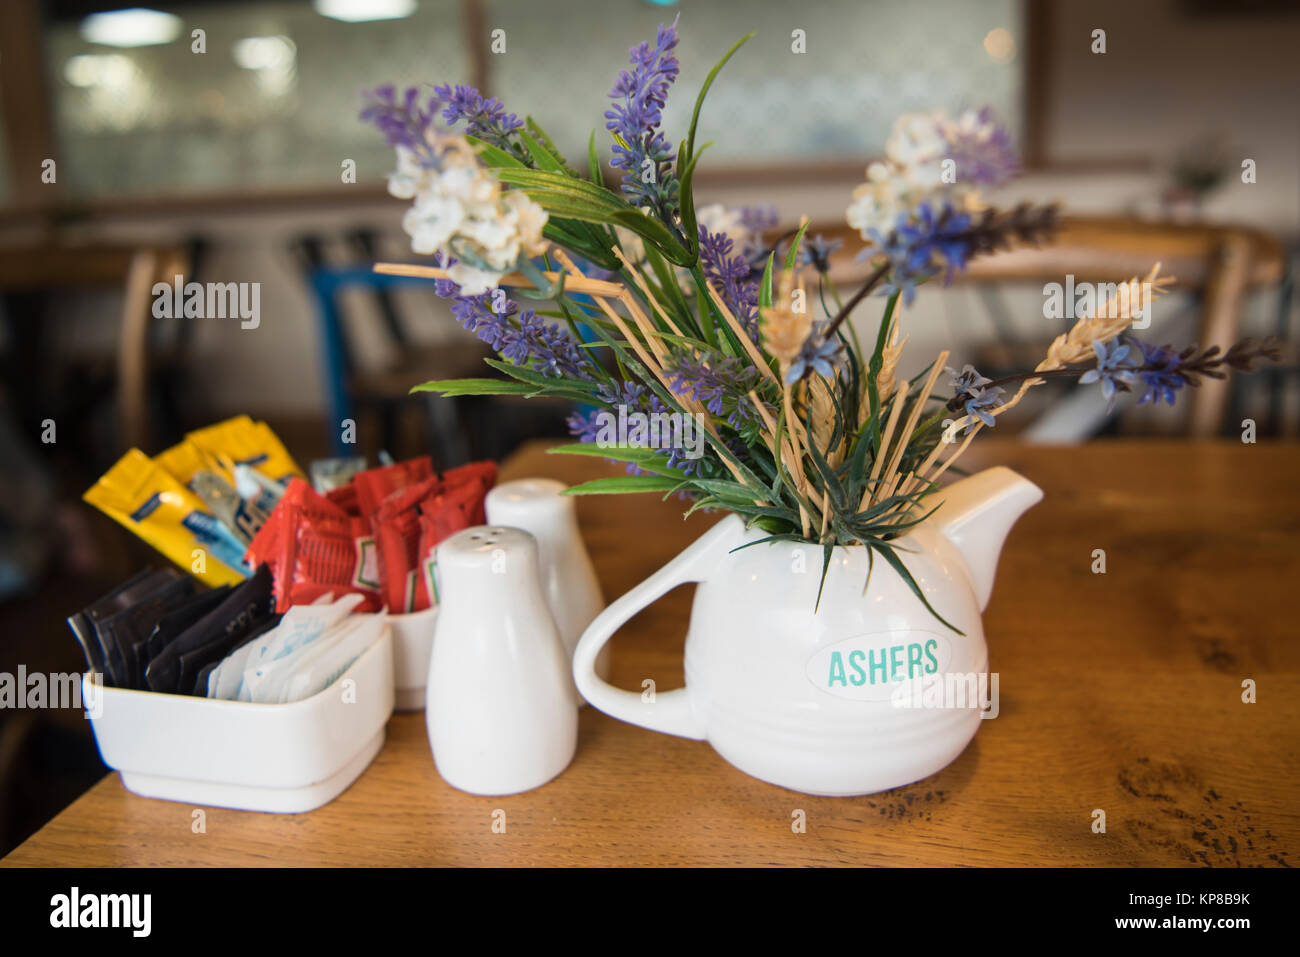 Table setting inside Ashers' Home Bakery Cafe, Newtownabbey. Ashers' became famous when the owners refused - Stock Image